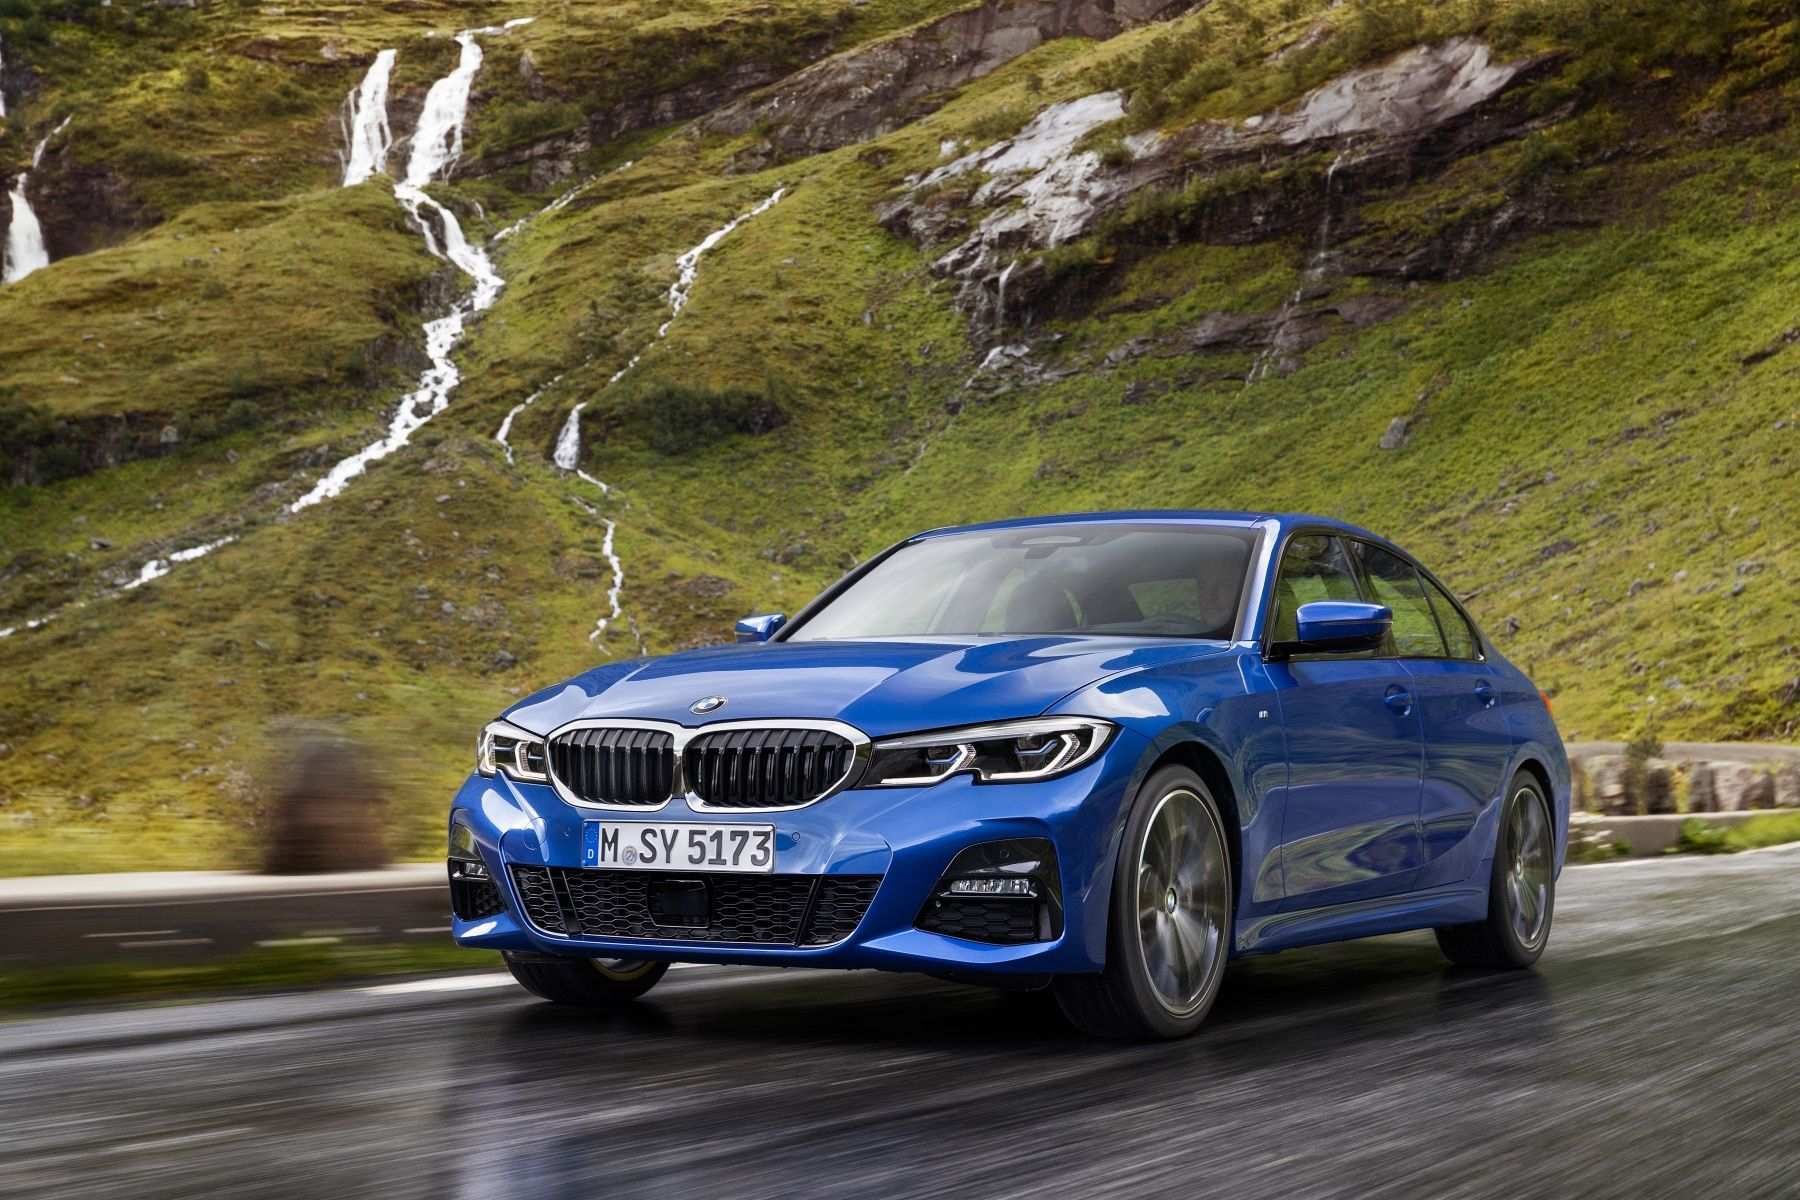 90 Best Review 2019 Bmw Reveal Style for 2019 Bmw Reveal